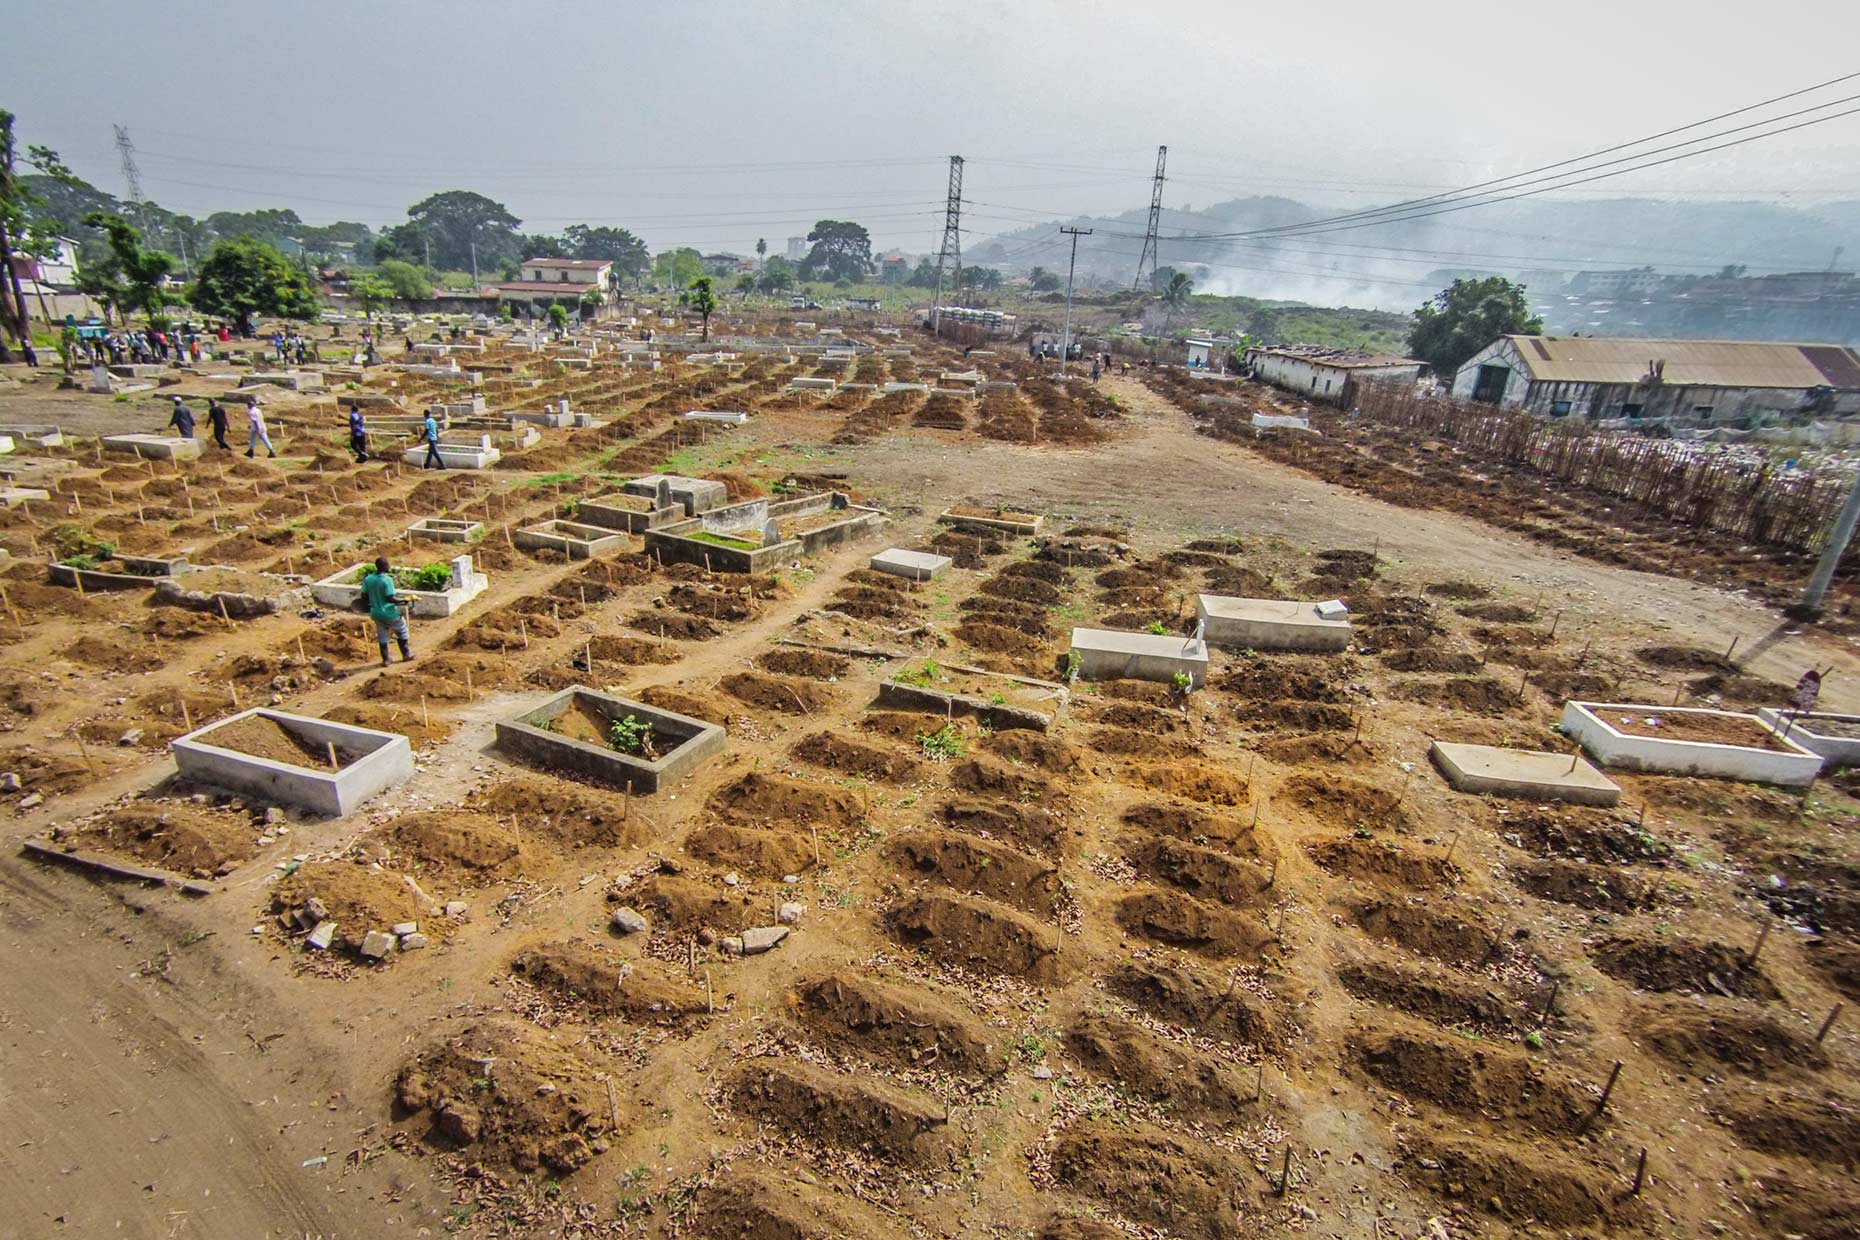 Aerial view of Ebloa graveyard showing the sheer number of fresh graves